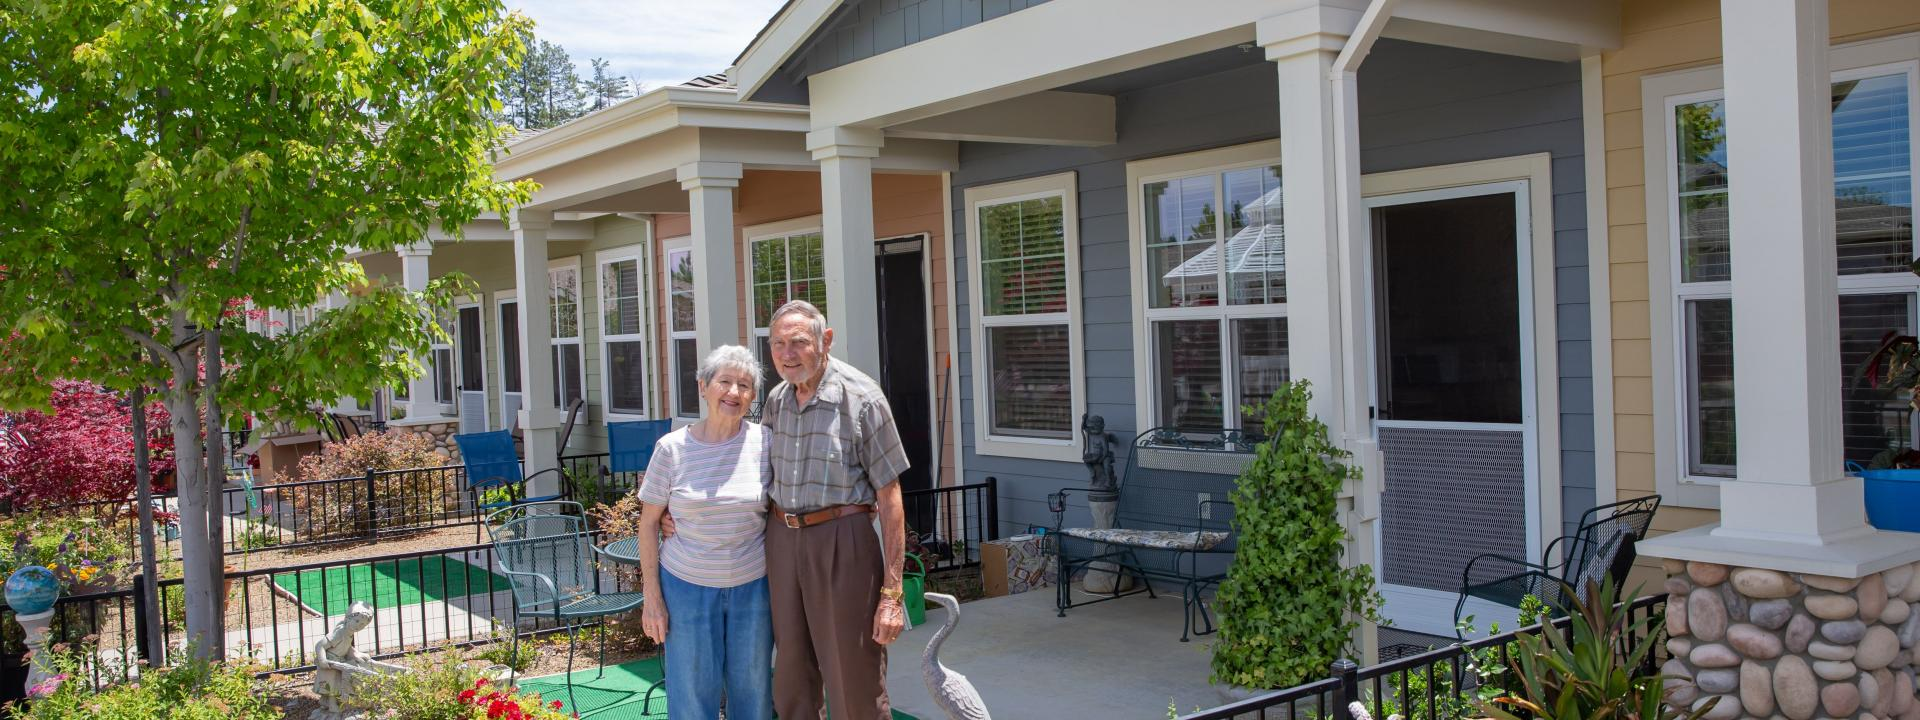 Smiling couples outside in front of their patio home